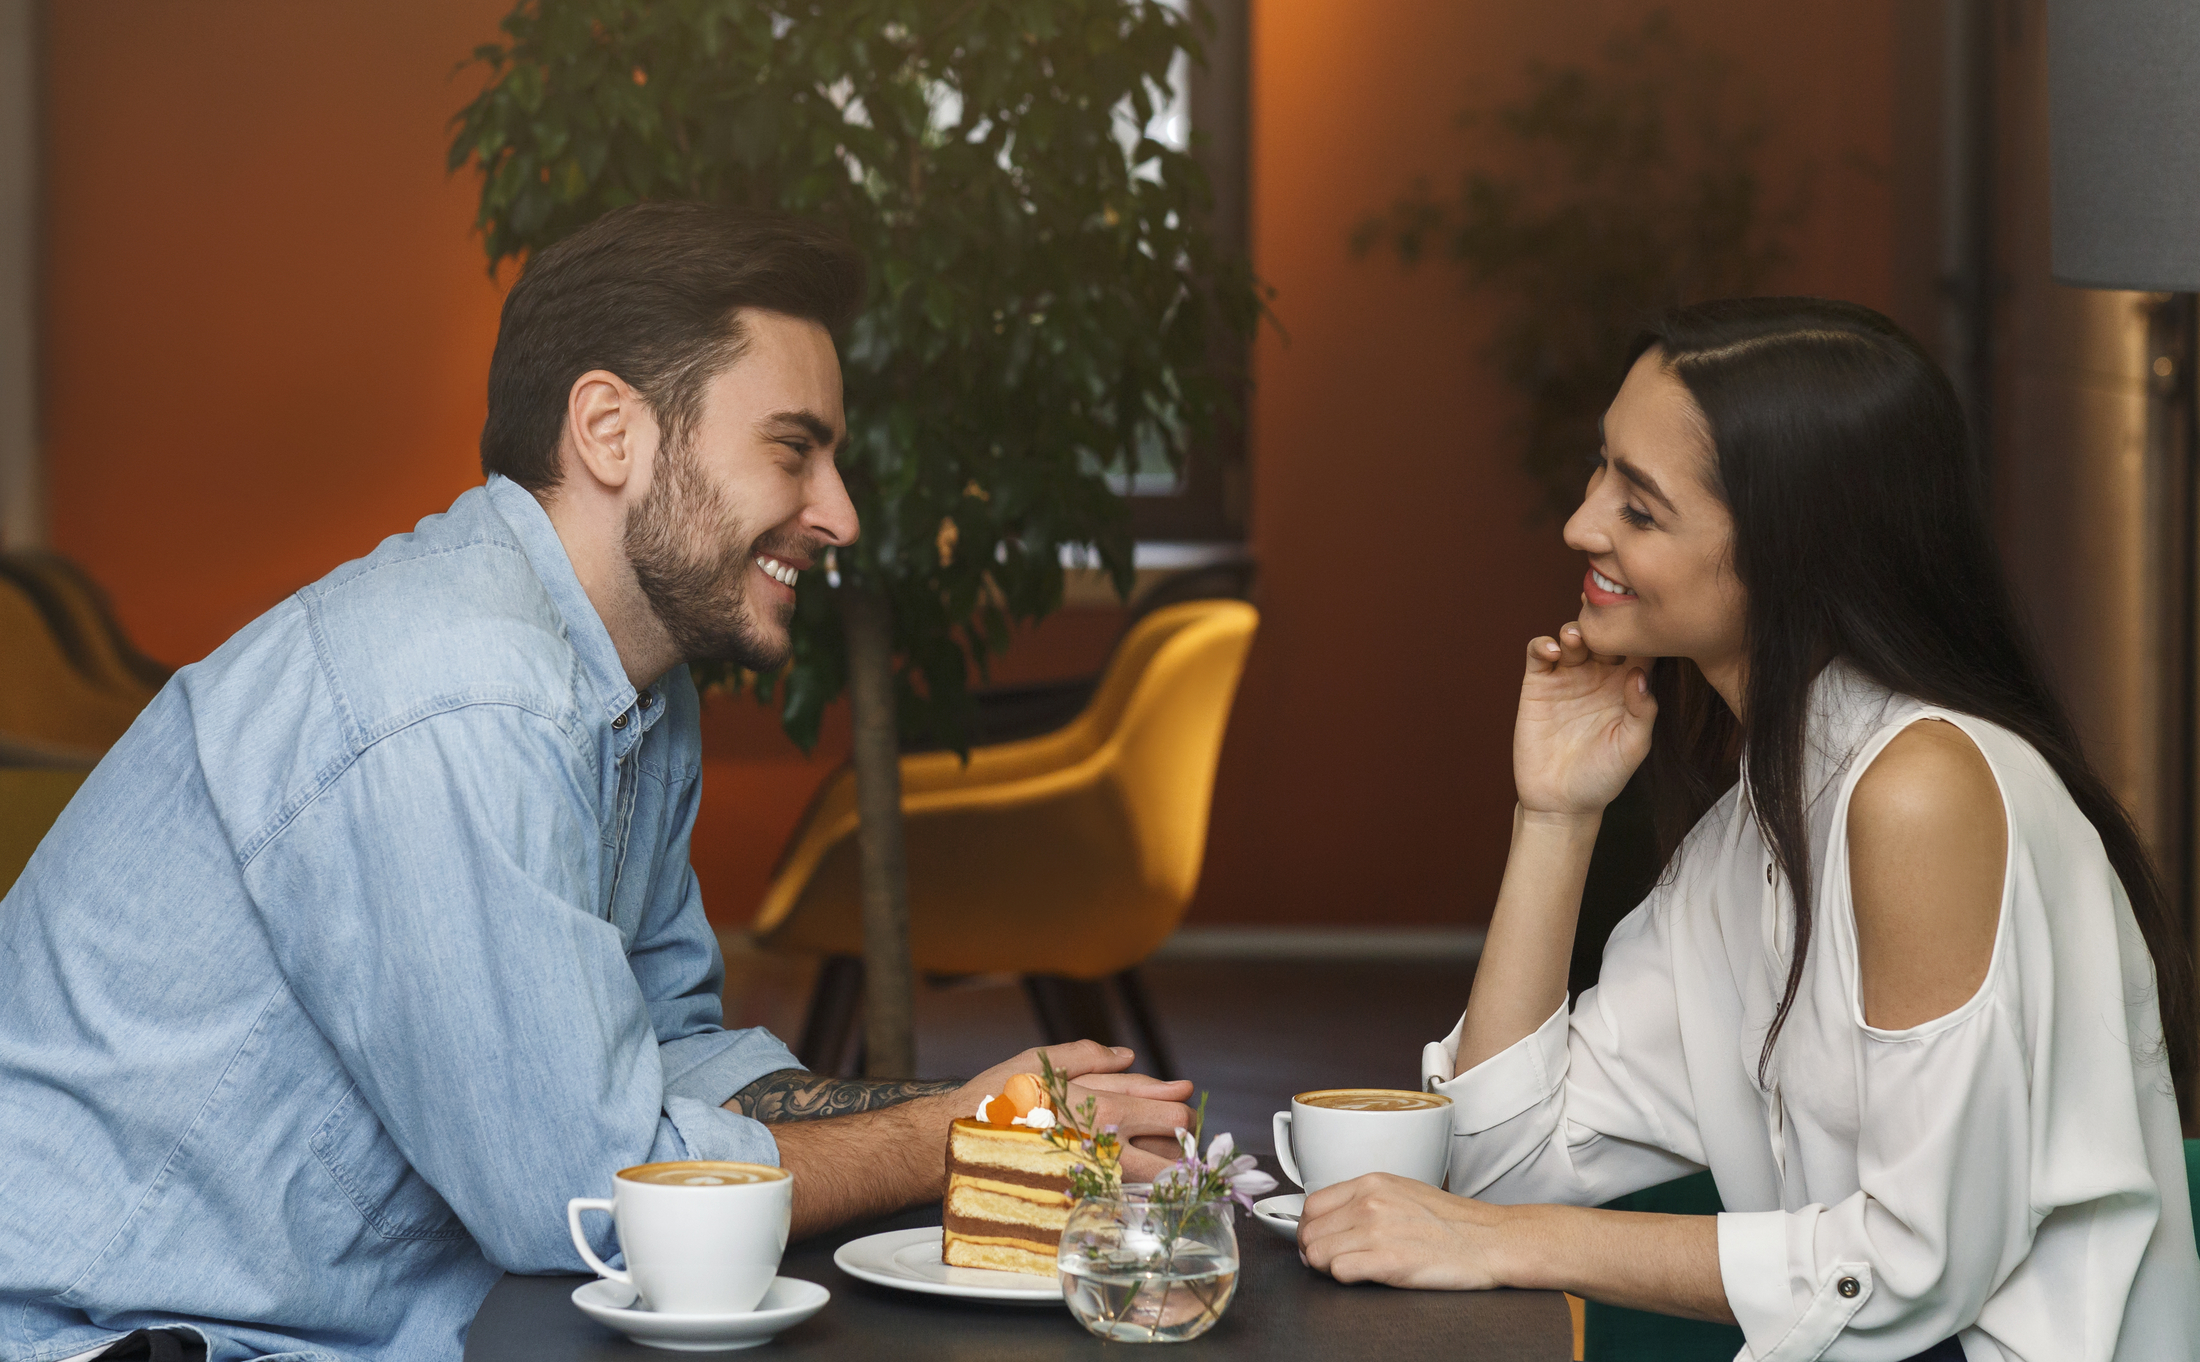 Over 35-year-old couple sitting with coffee and dessert enjoying their date.